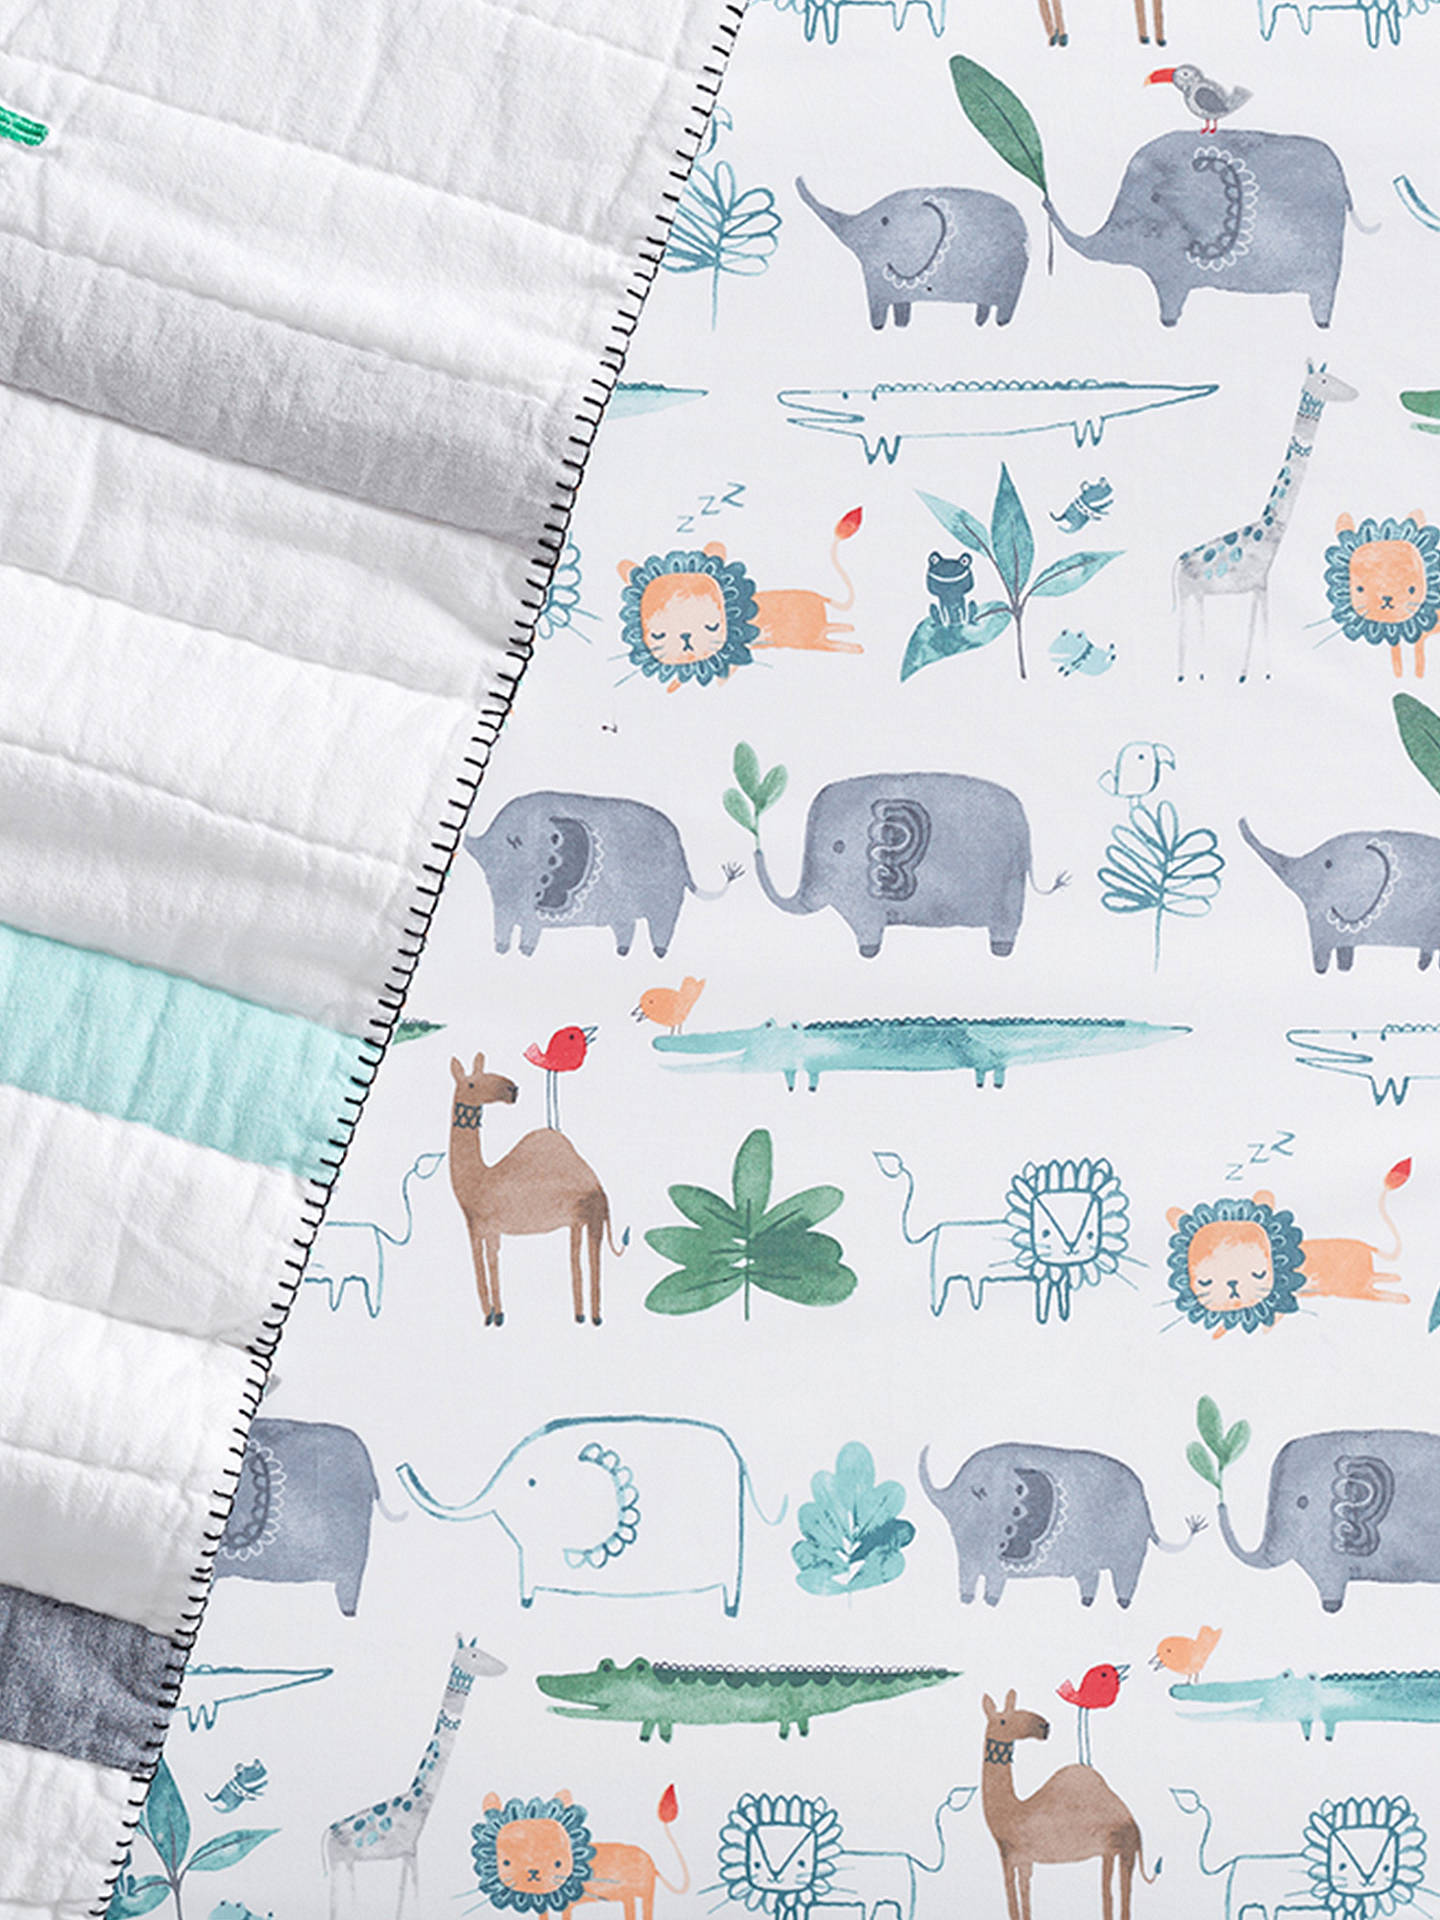 Buy Pottery Barn Kids Organic Cotton Animal Print Fitted Crib Sheet, 70 x 132cm, Multi Online at johnlewis.com